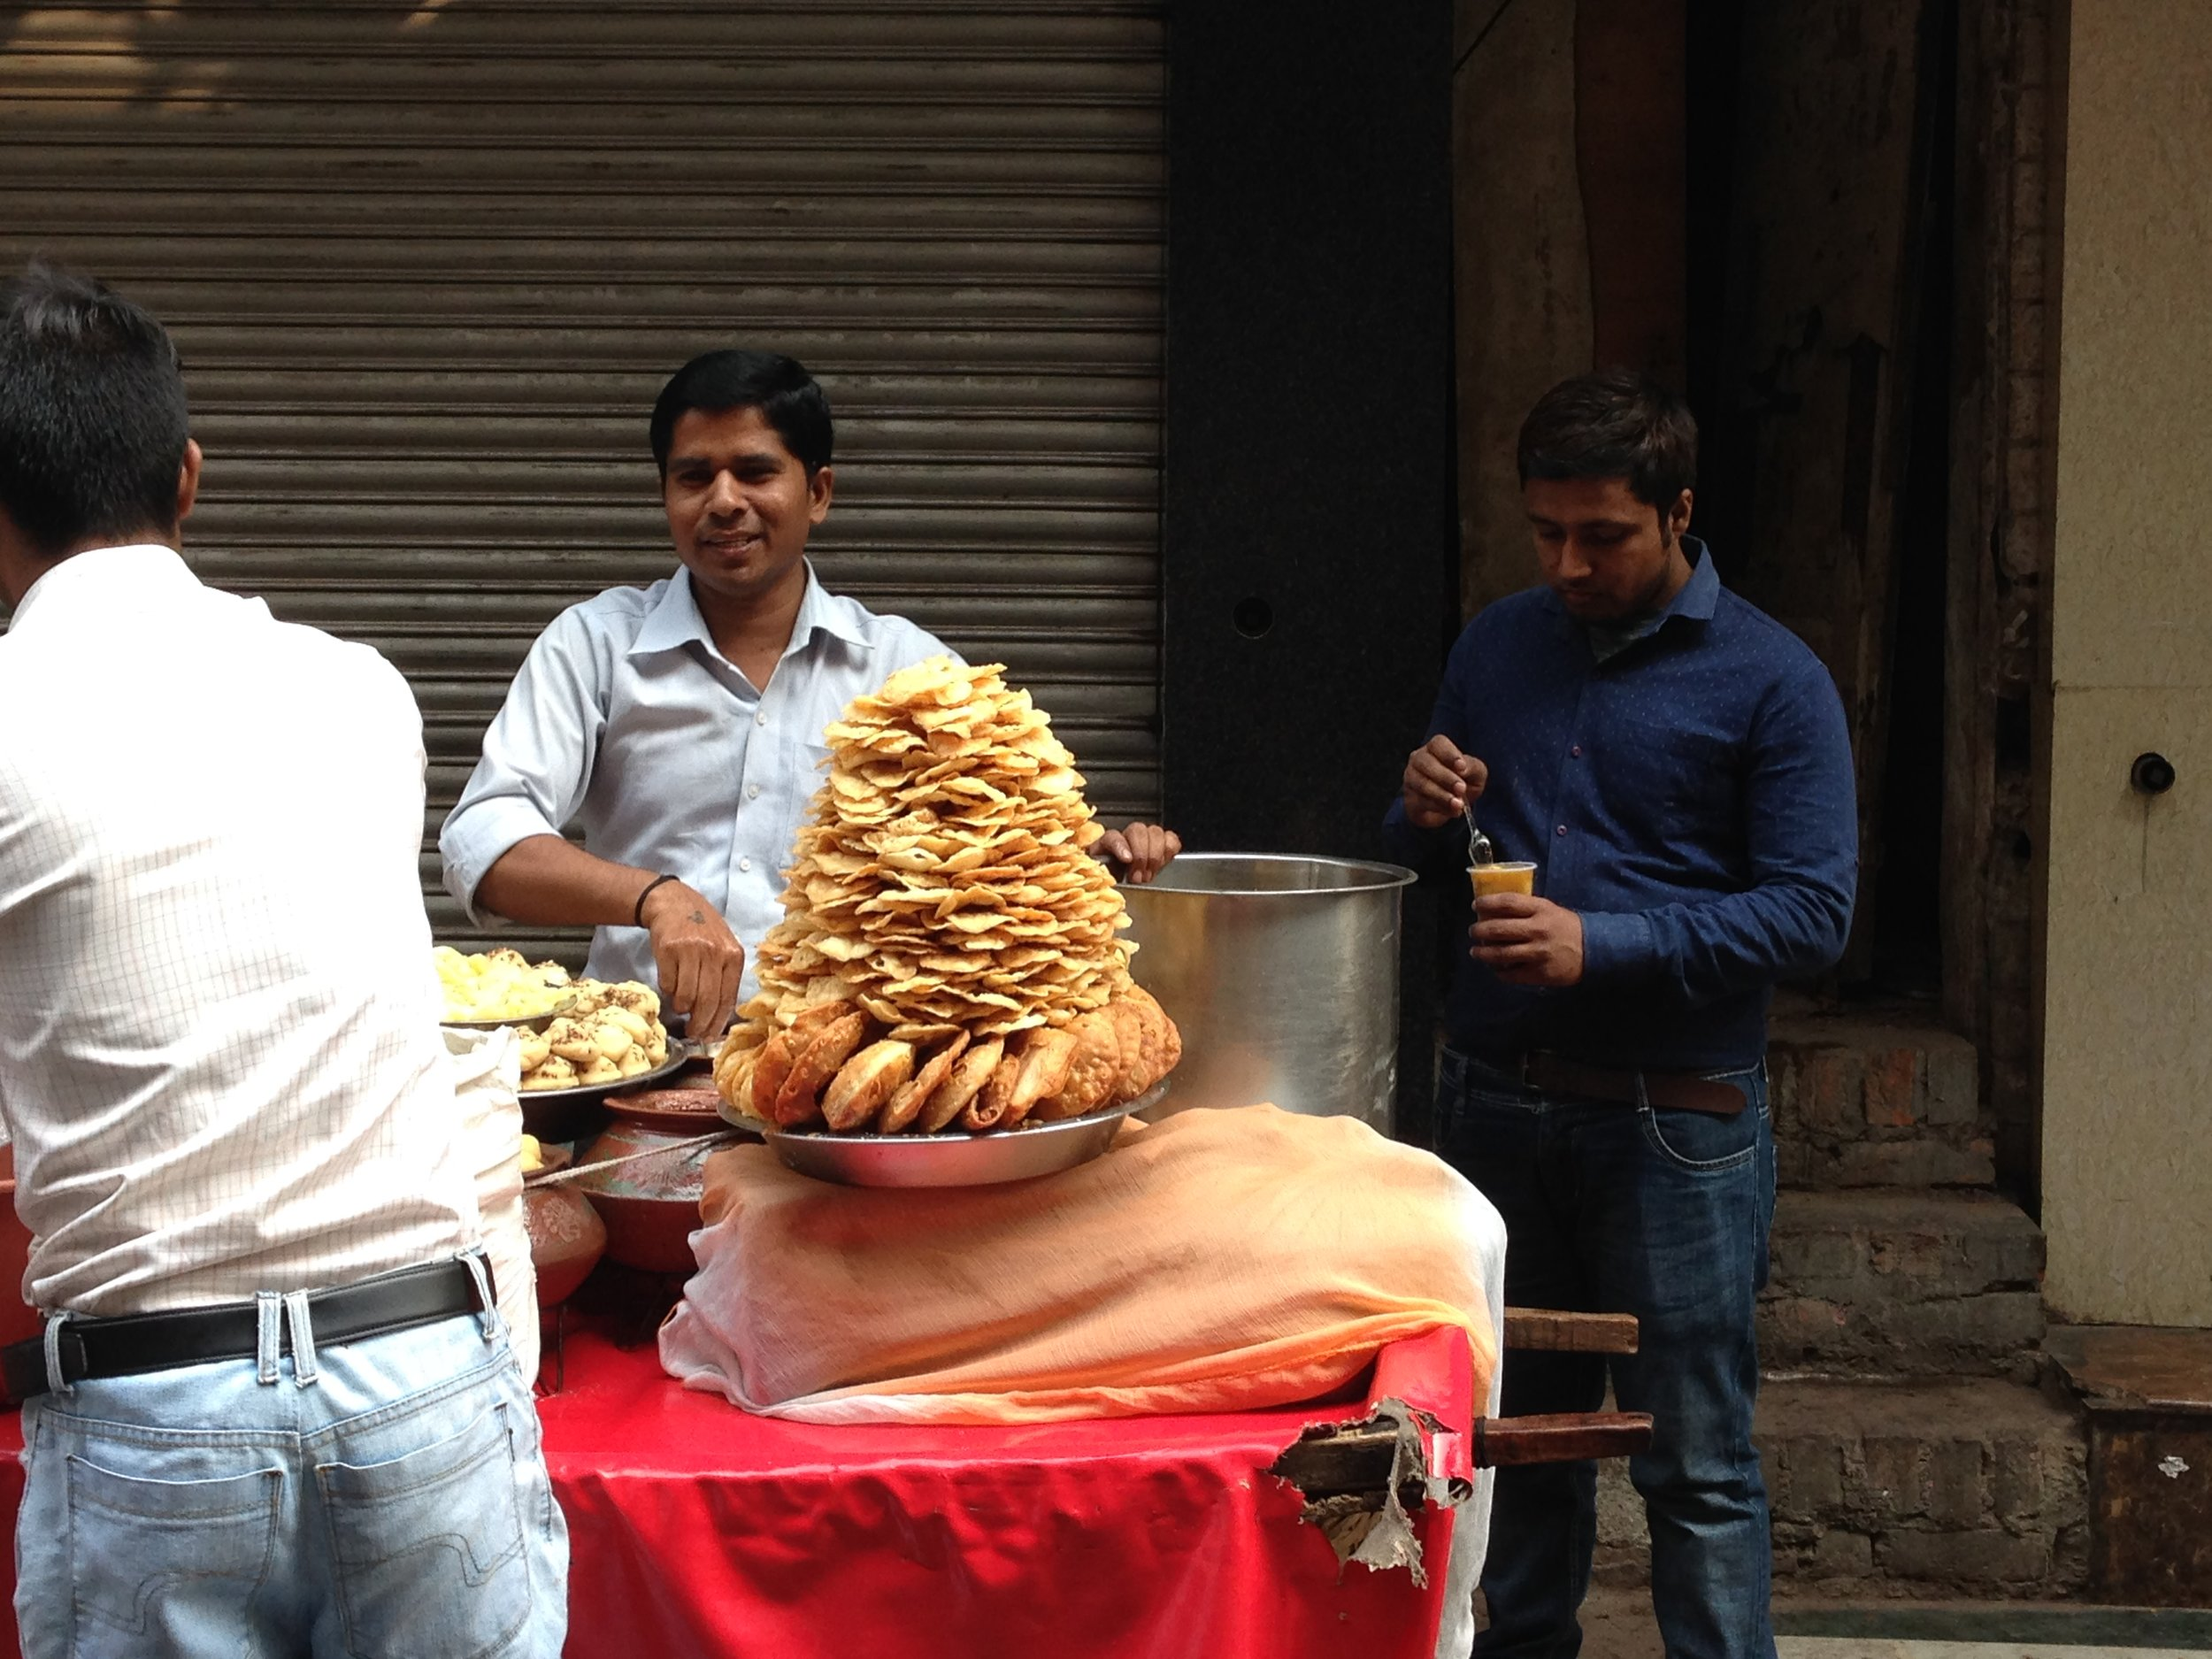 Talin Spring travel Spring Finn and Co Old Delhi food vendors India Delhi street photography street food